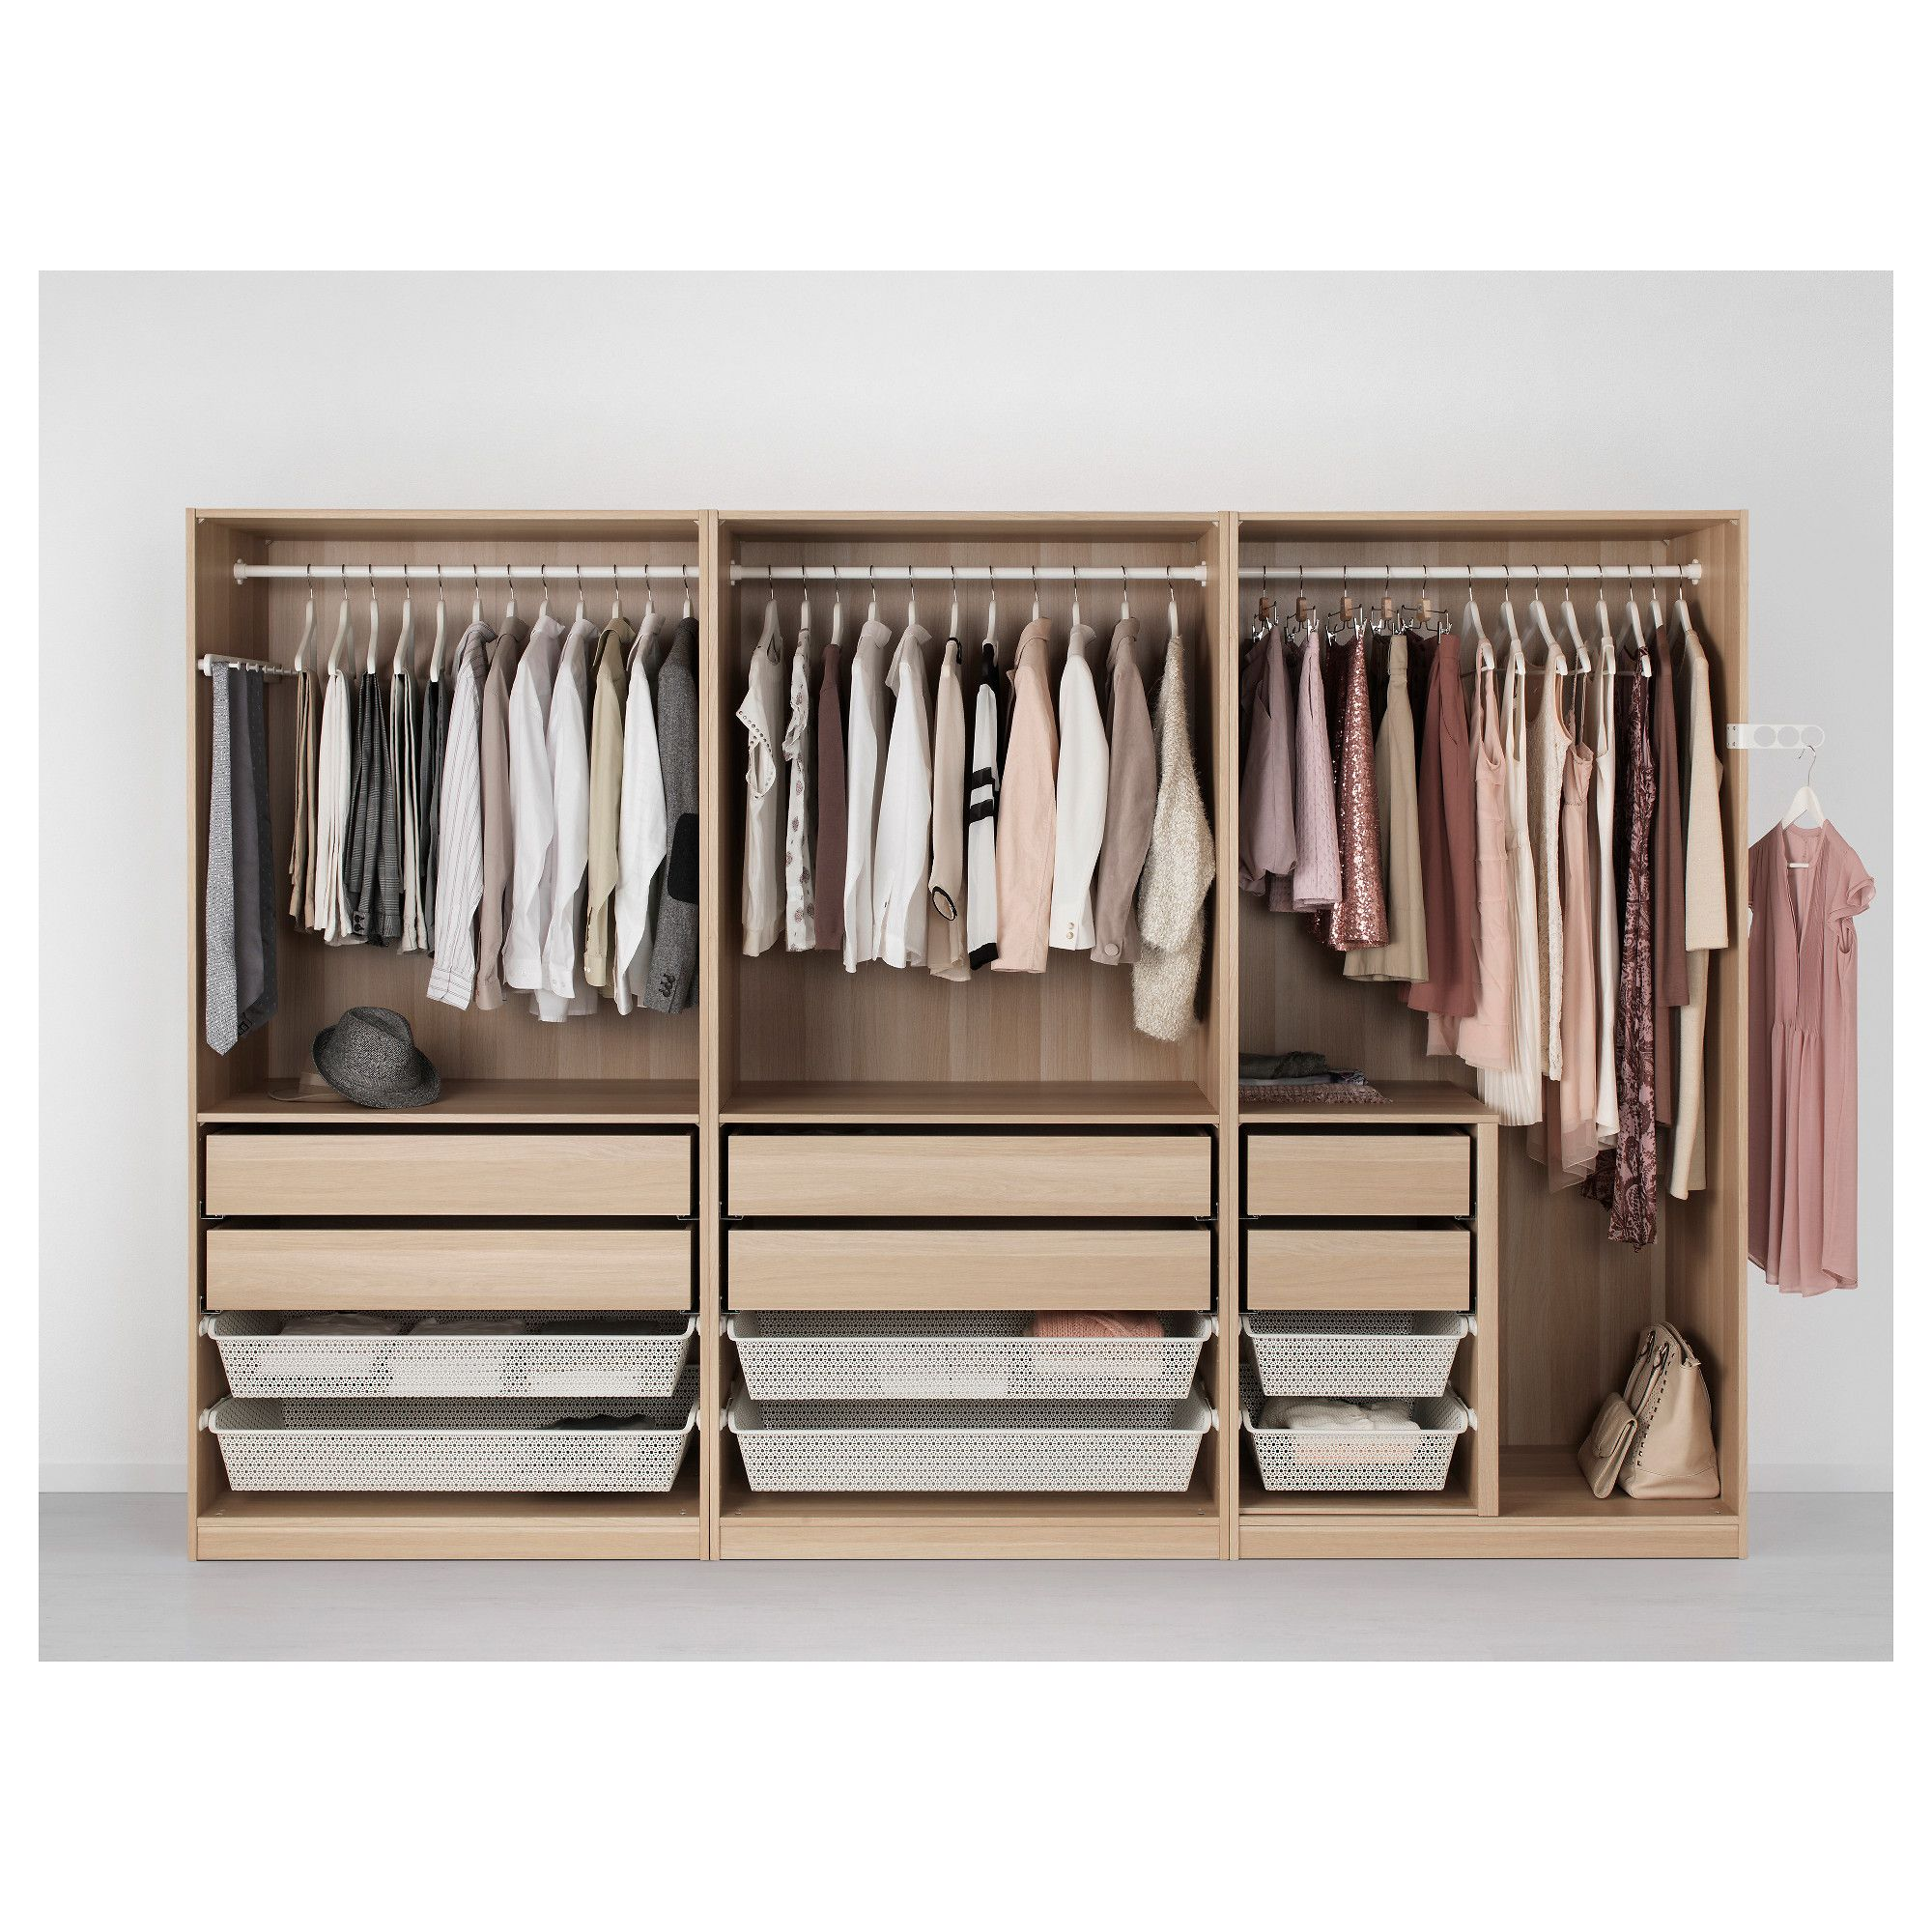 IKEA PAX wardrobe 10 year guarantee. Read about the terms